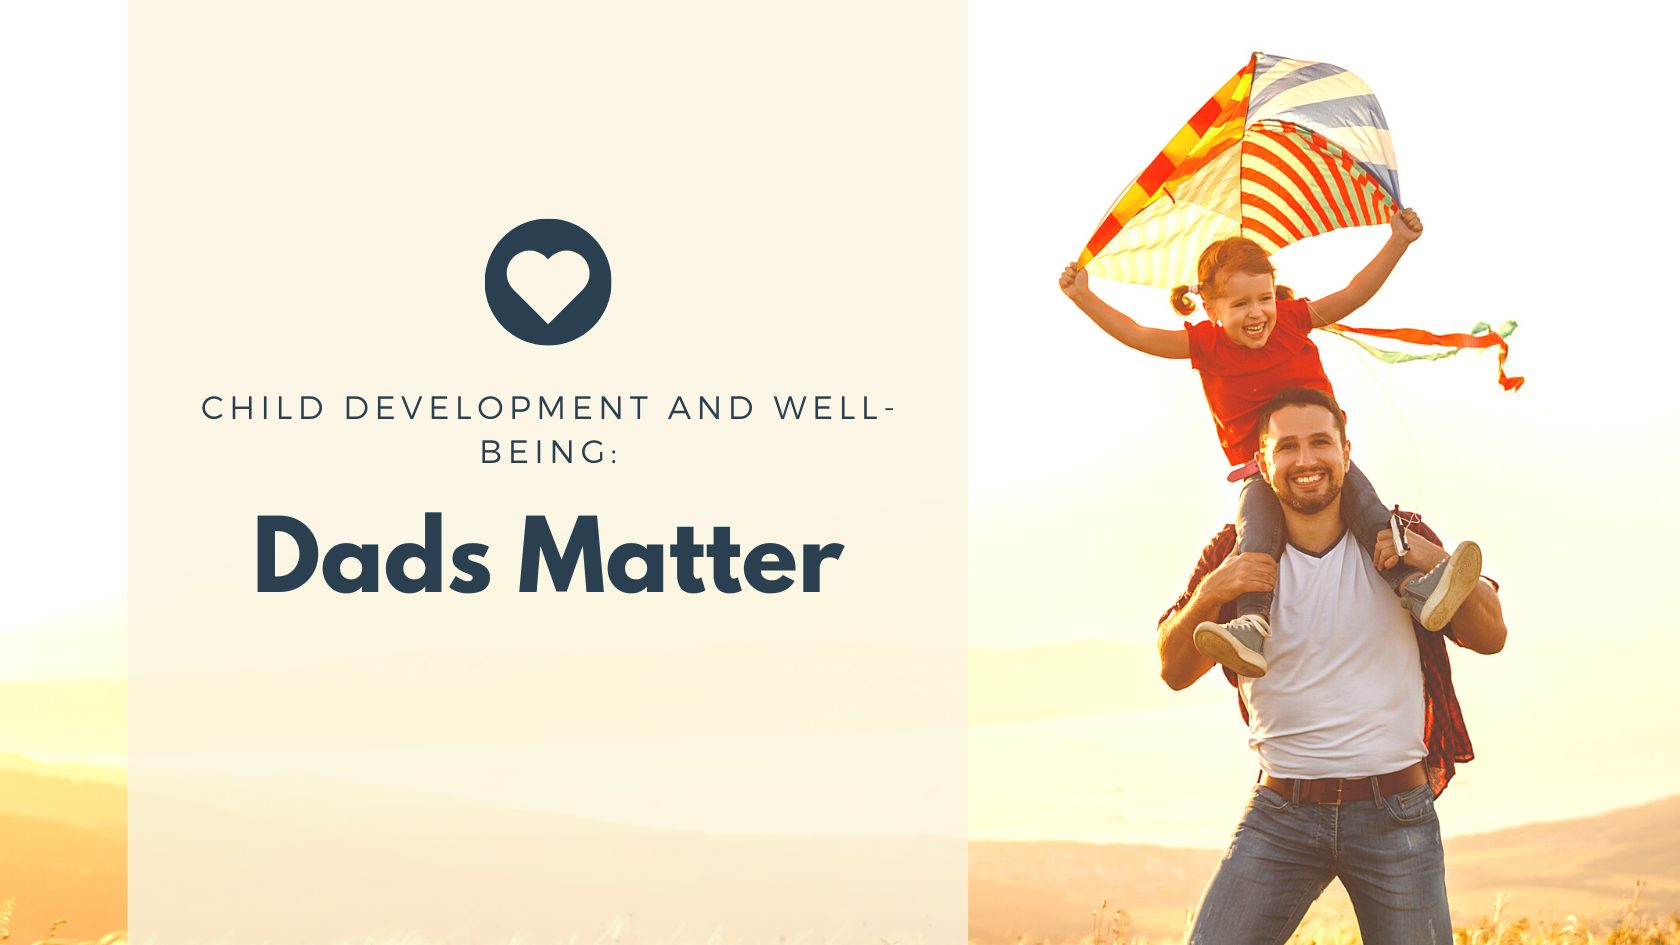 Child Development and Well-Being: Dads matter